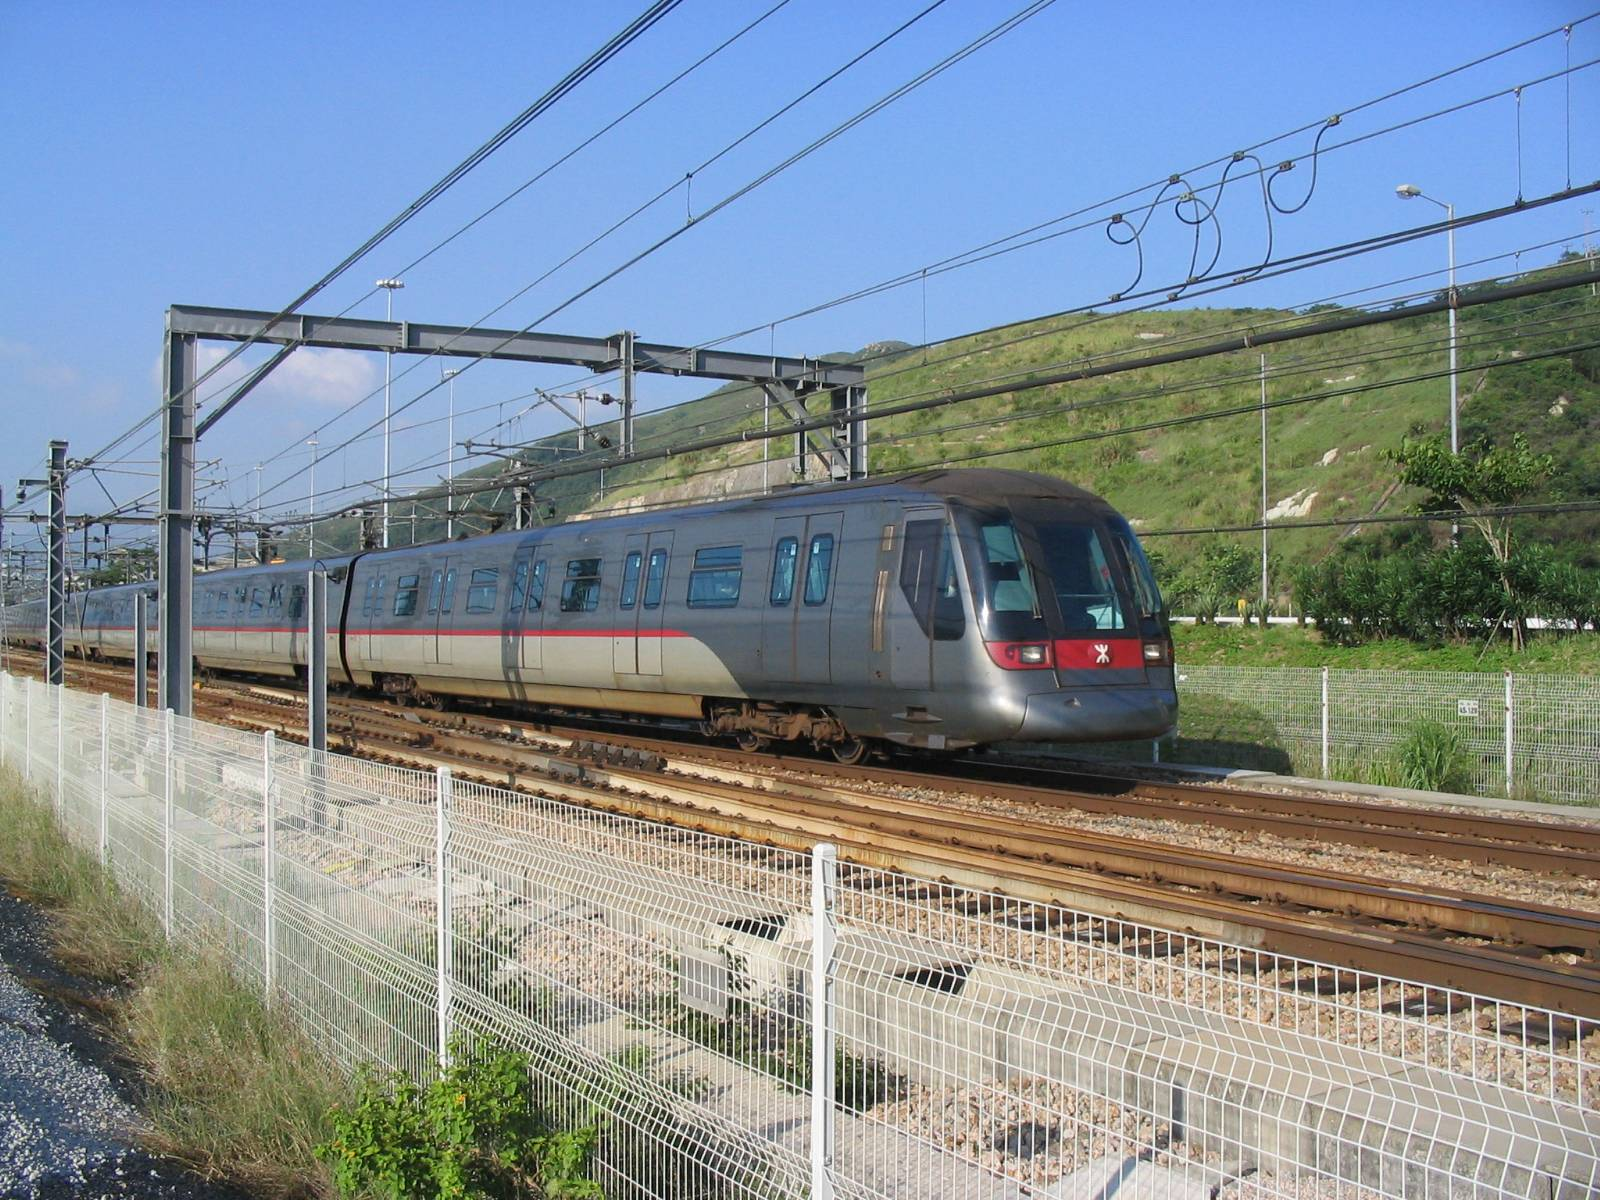 The porn video was filmed on a train believed to be operating on the Tung Chung line of the Hong Kong rapid transit system